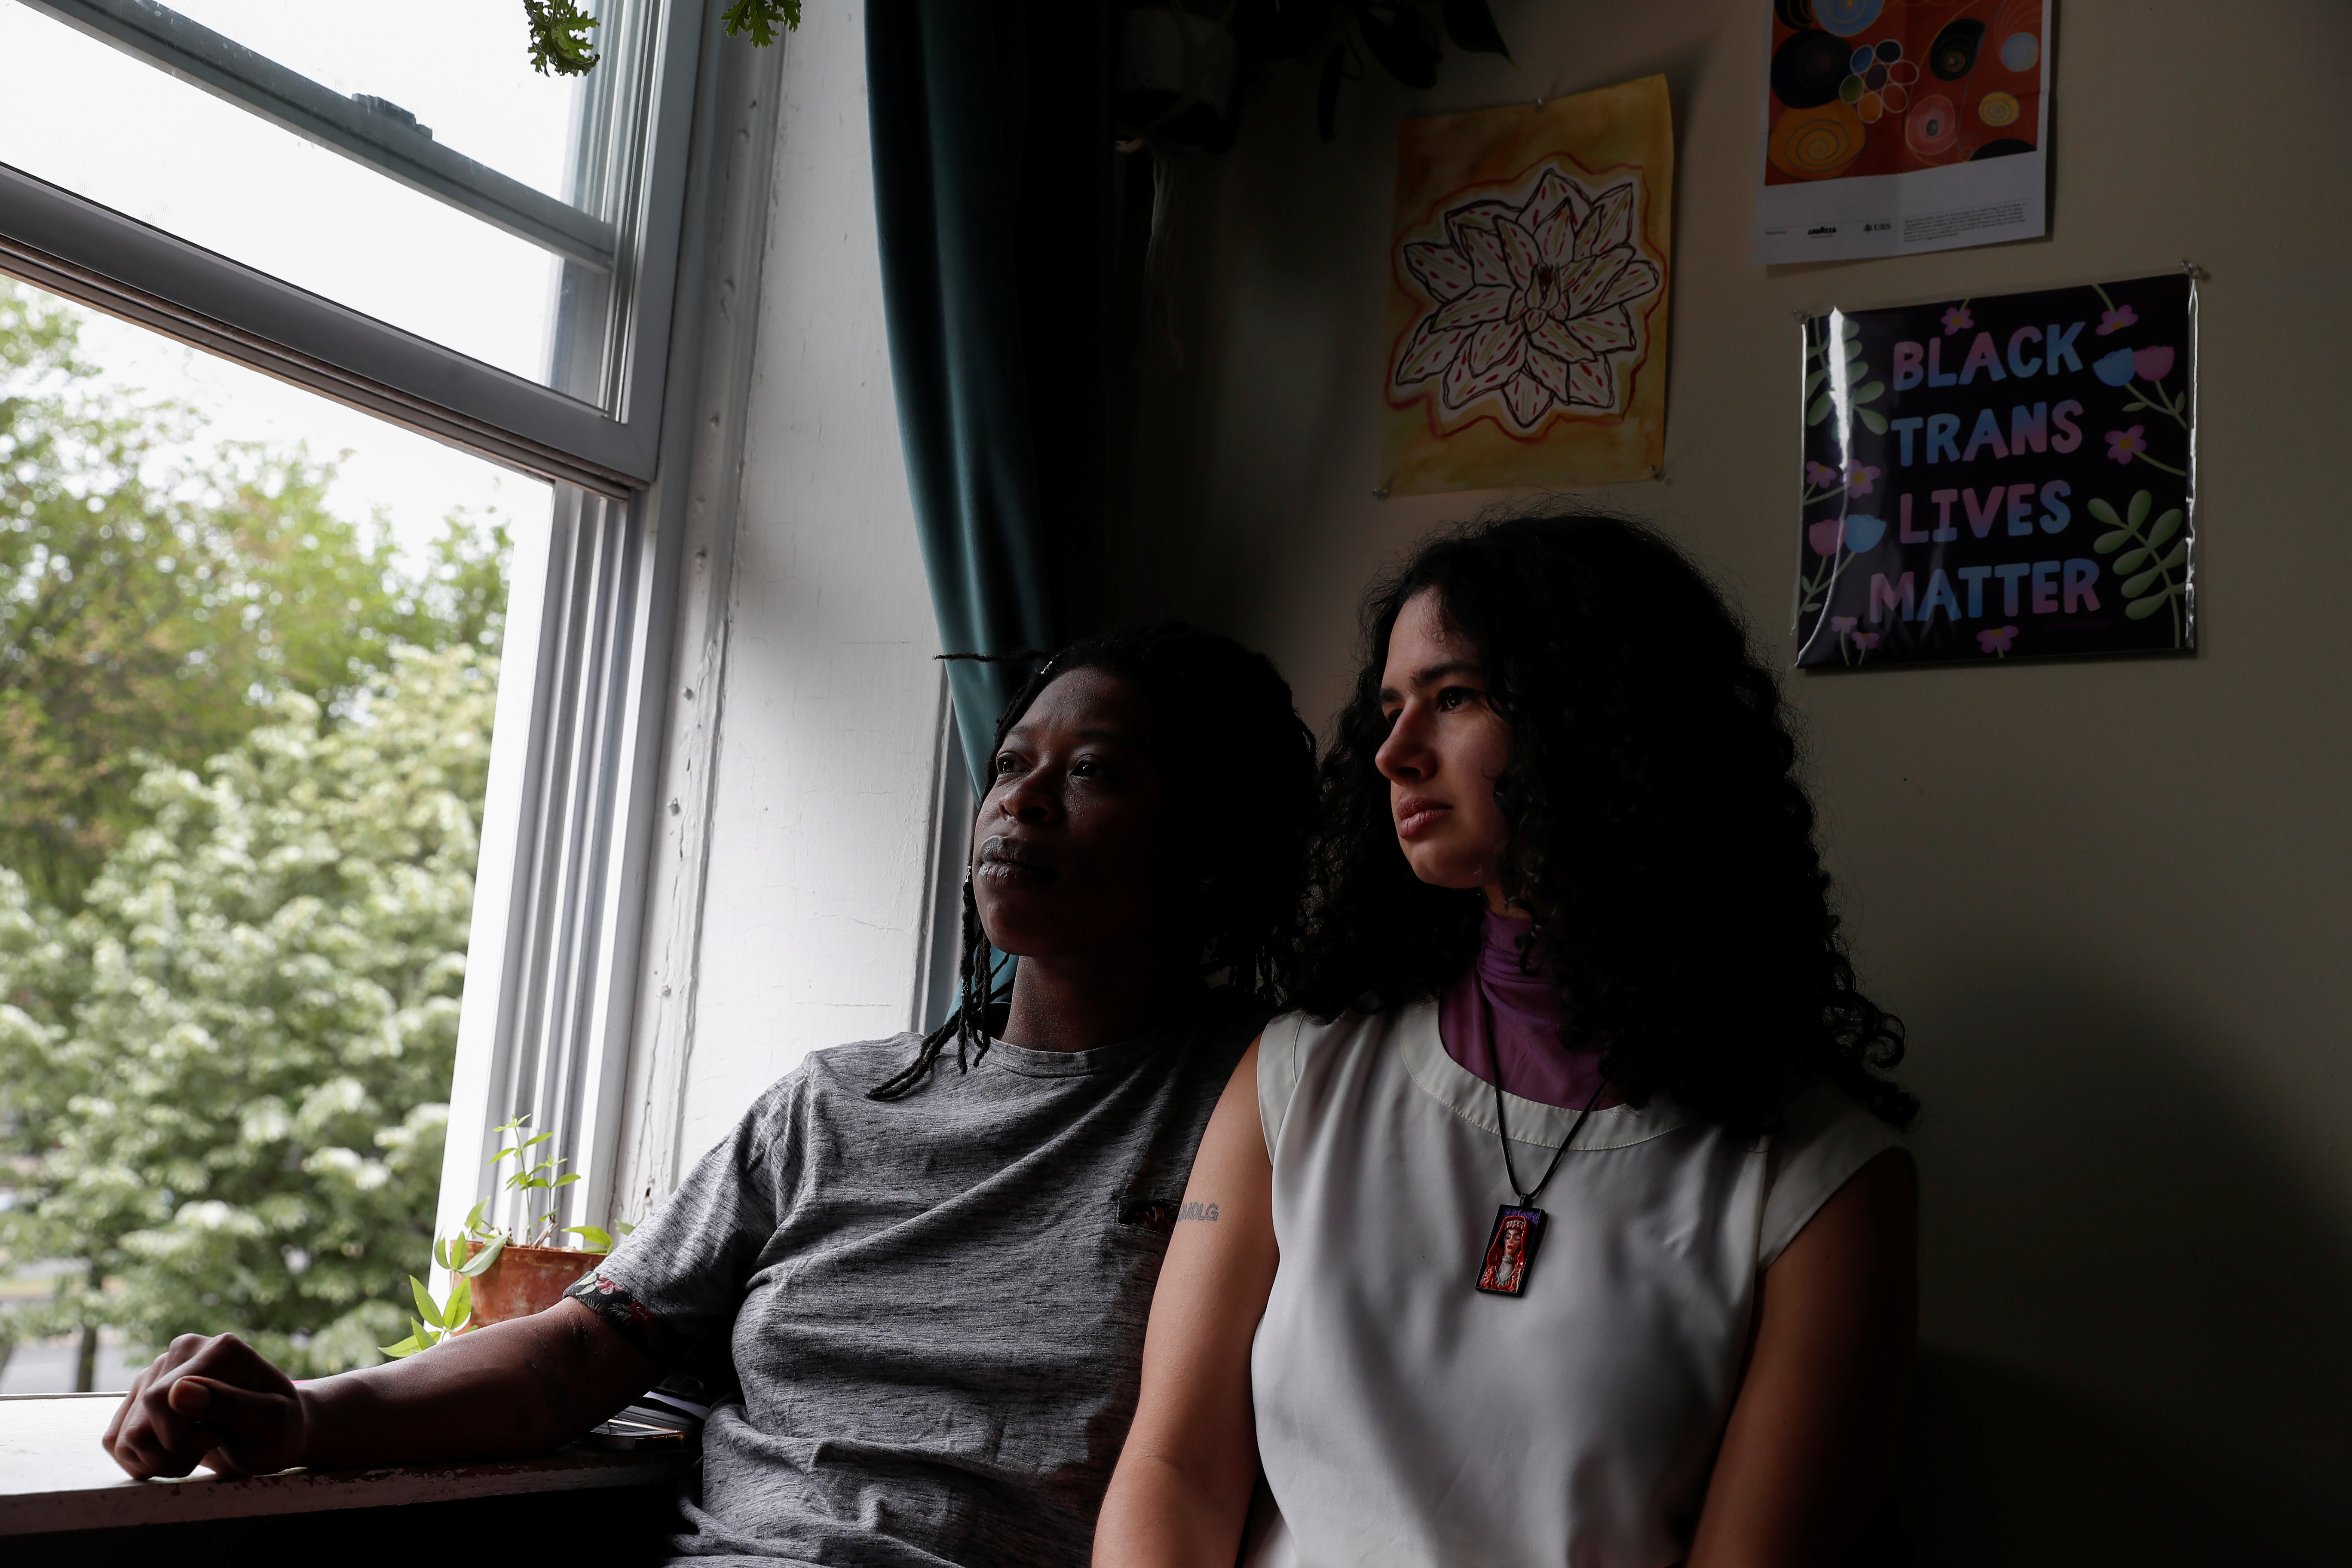 Elsa Eli Waithe and Ada Reso, 'Slavers of New York' campaign co-founders, pose by the window in the Bedford-Stuyvesant section of the Brooklyn borough of New York City, U.S., May 24, 2021. Picture taken May 24, 2021. REUTERS/Shannon Stapleton